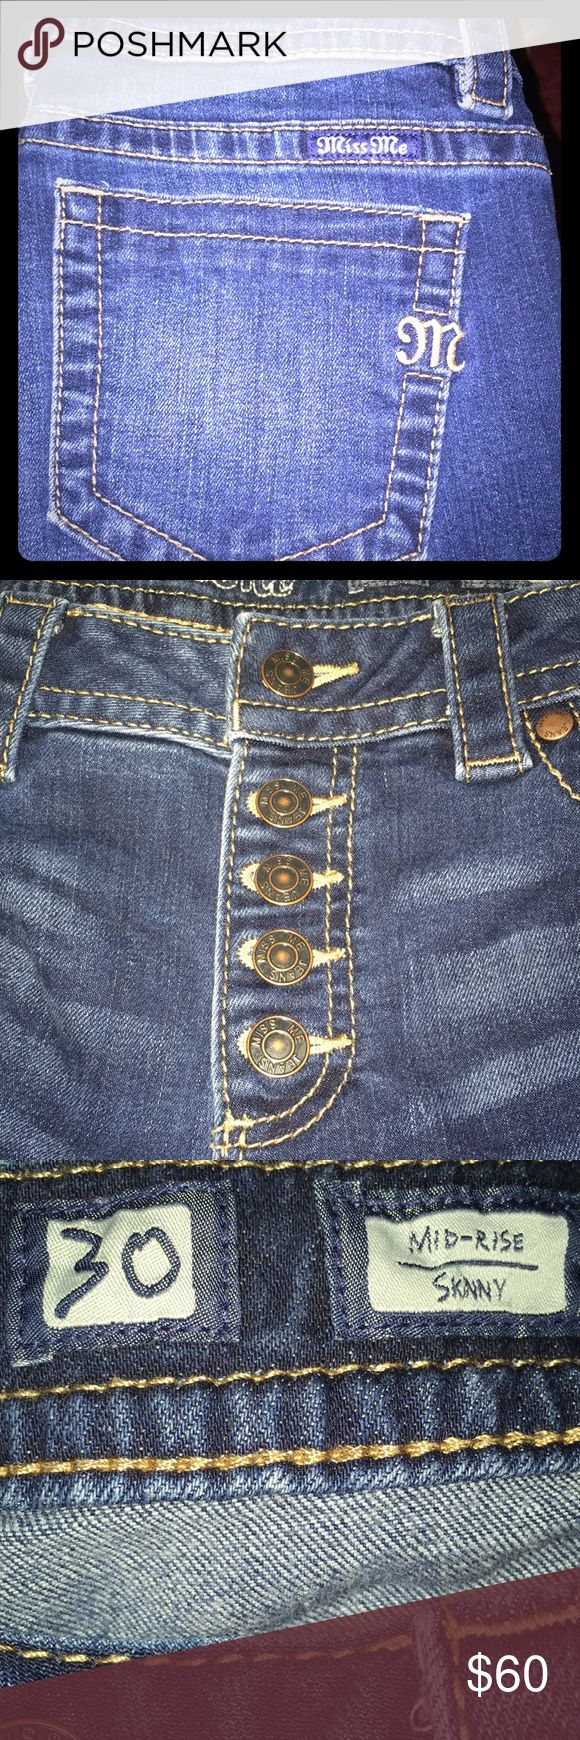 Sexy Button Fly Jeans Miss Me. Button Fly, mid-rise, skinny jeans. Factory holes near knees. Slightly distressed look. Almost new condition. Ankle length. Miss Me Jeans Skinny